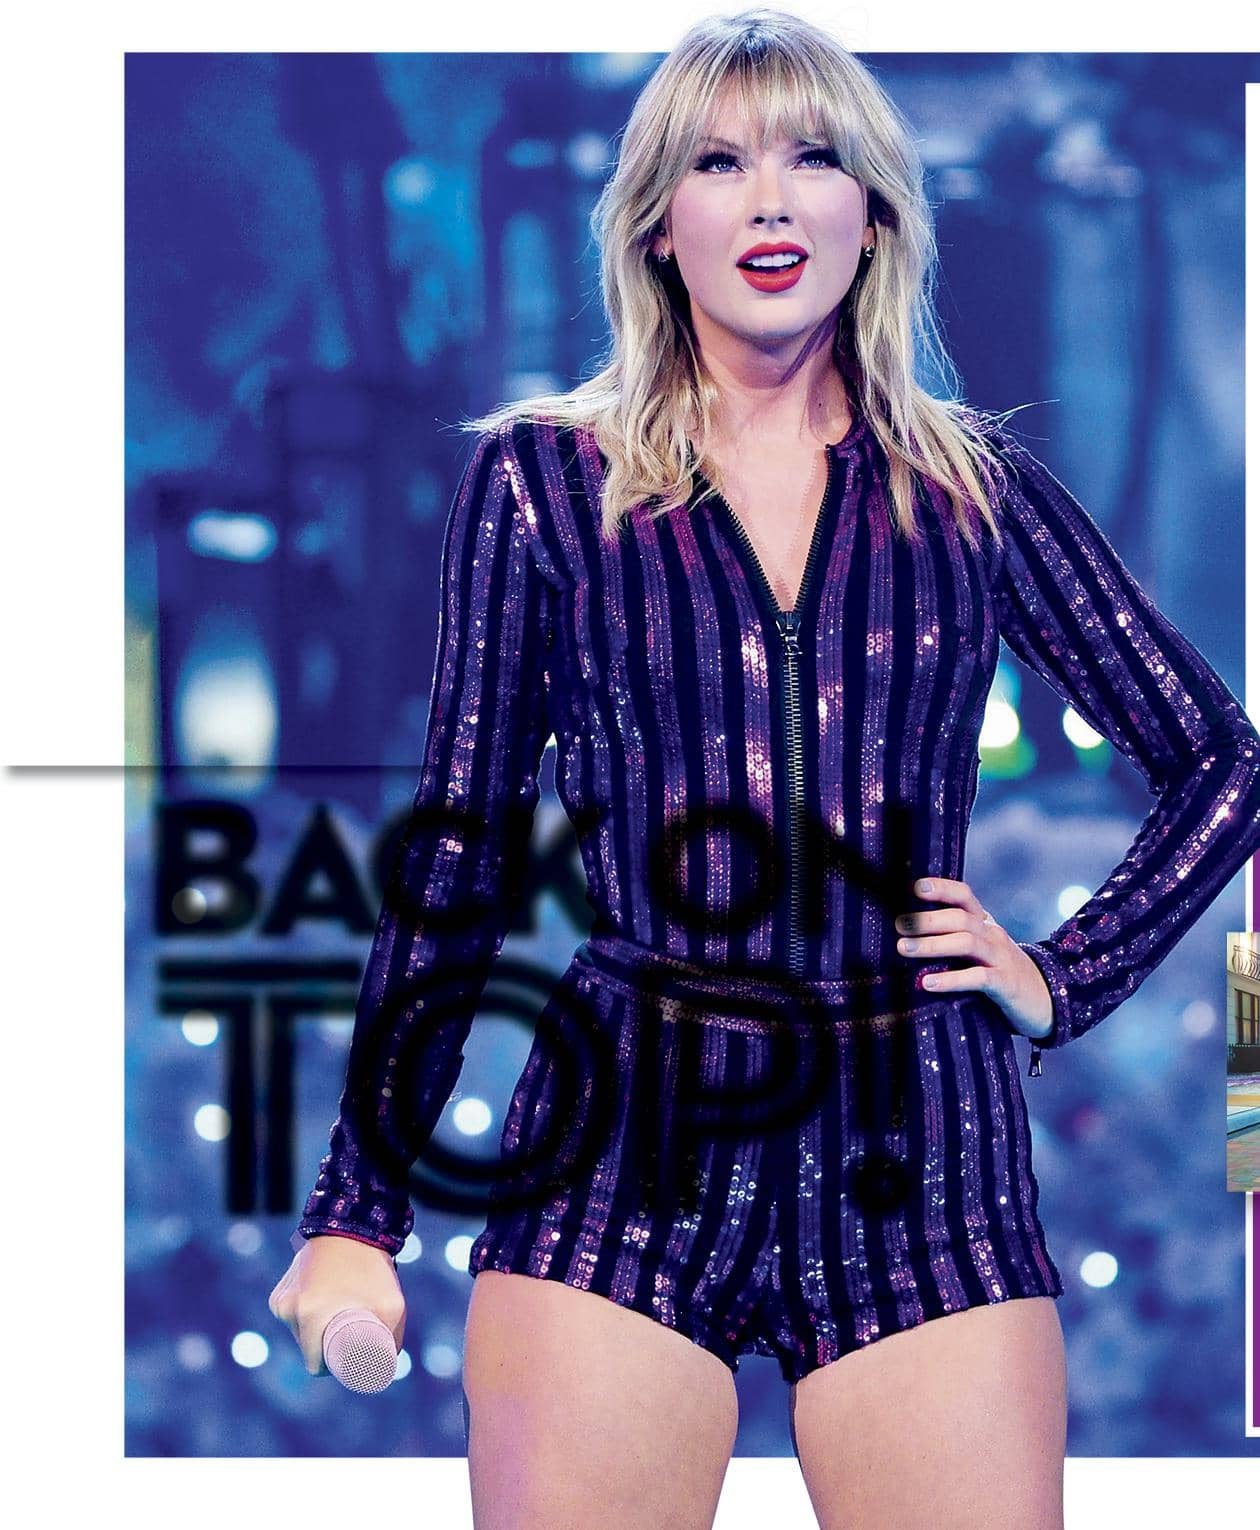 Taylor Swift Back On Top!